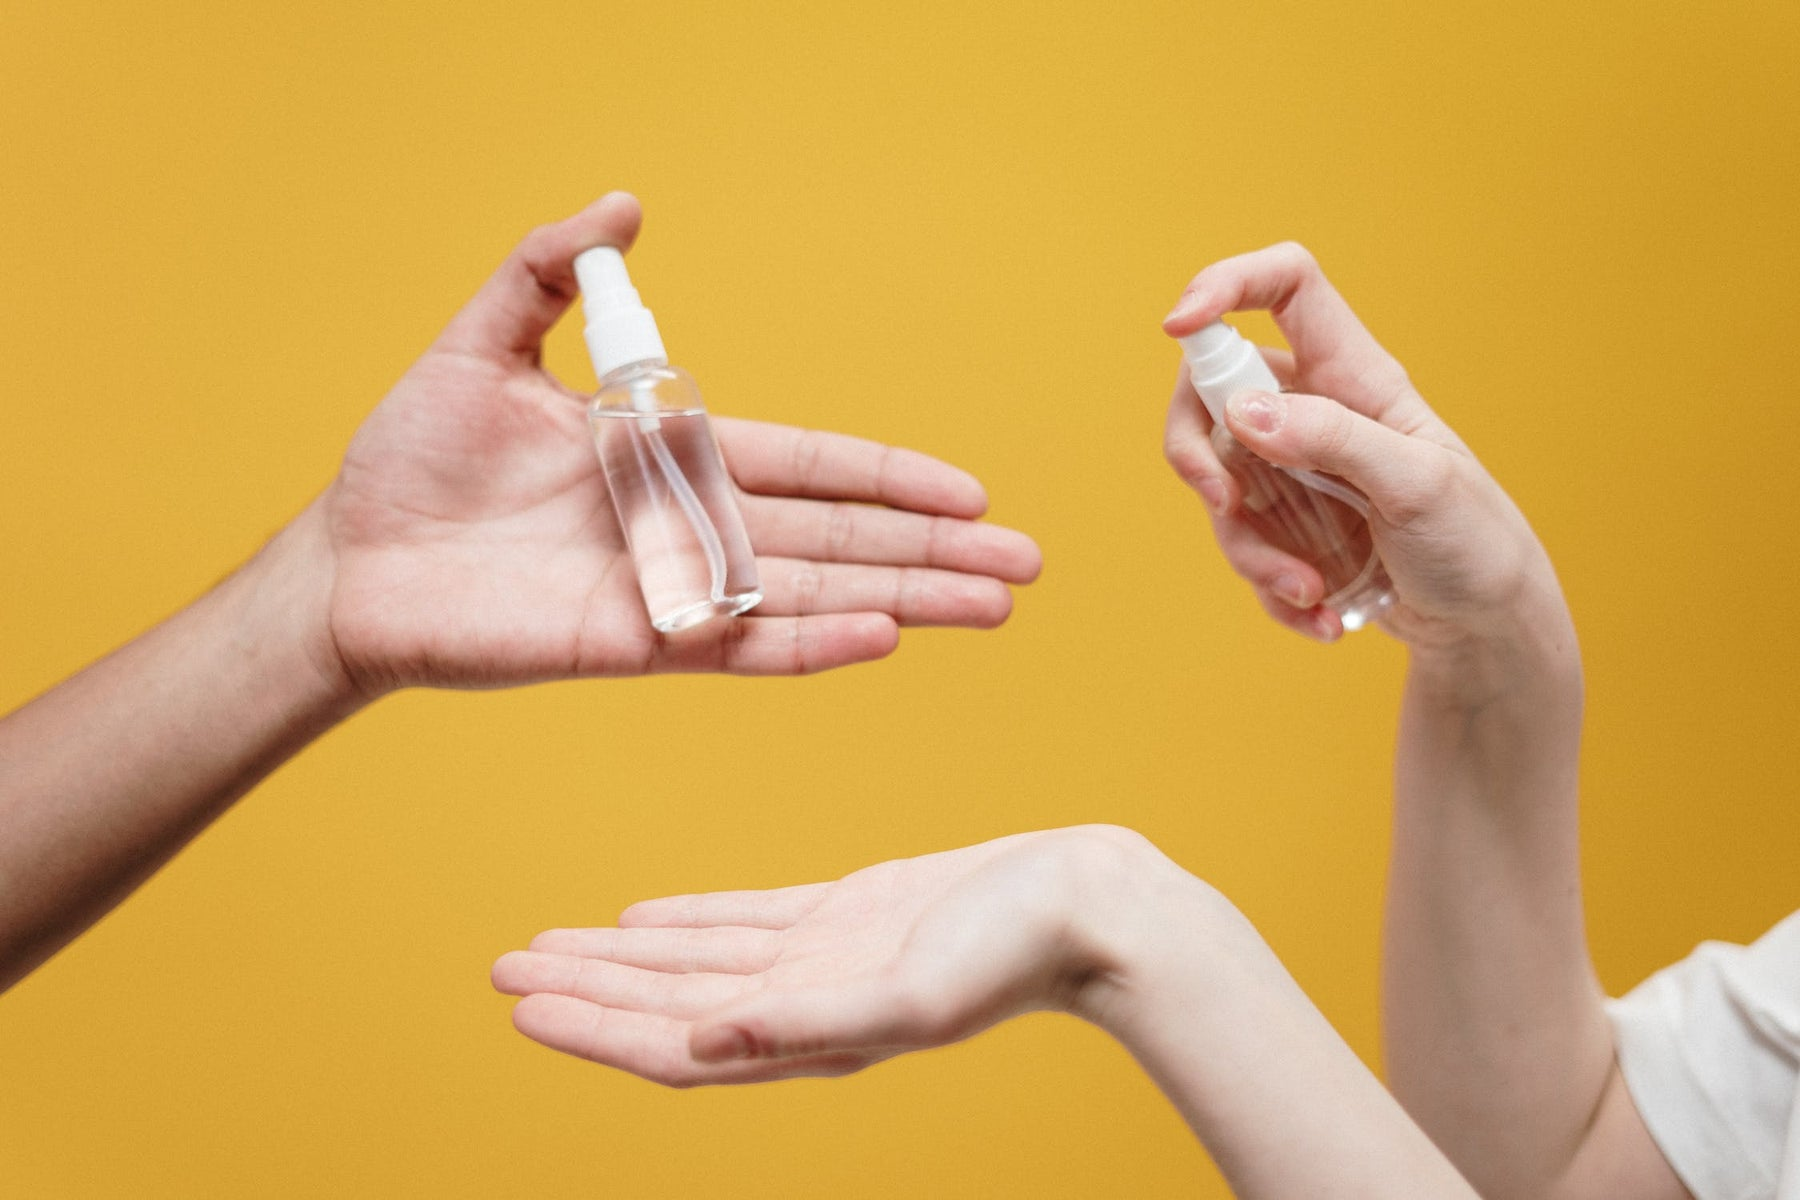 A Beginner's Guide to Hand Sanitizer: What to Buy and How to Use It